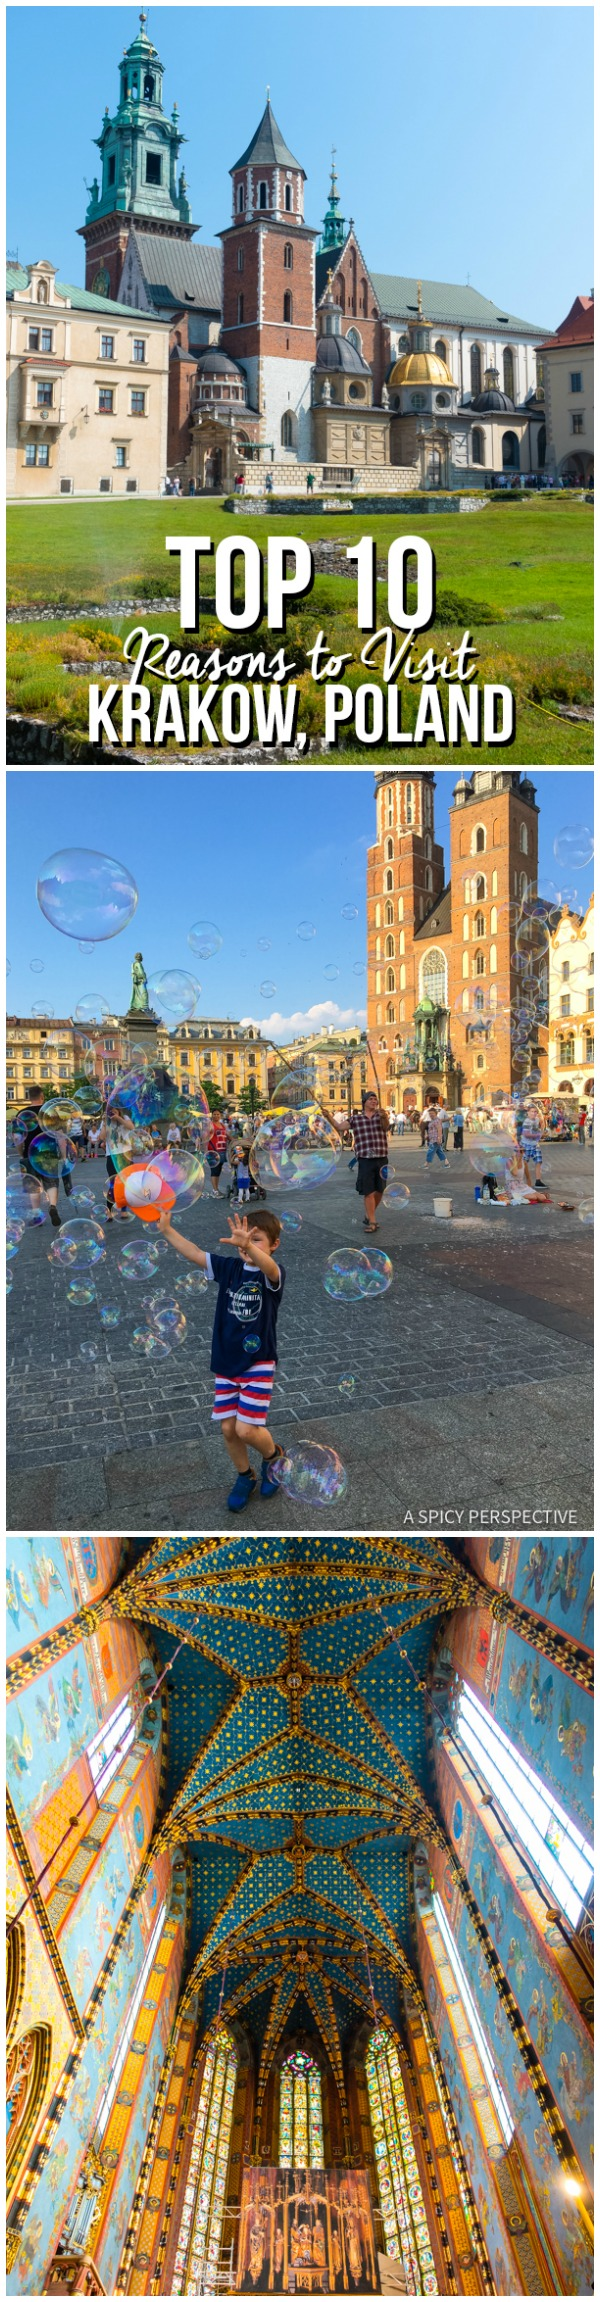 10 Reasons to Visit Krakow, Poland | ASpicyPerspective.com #travel